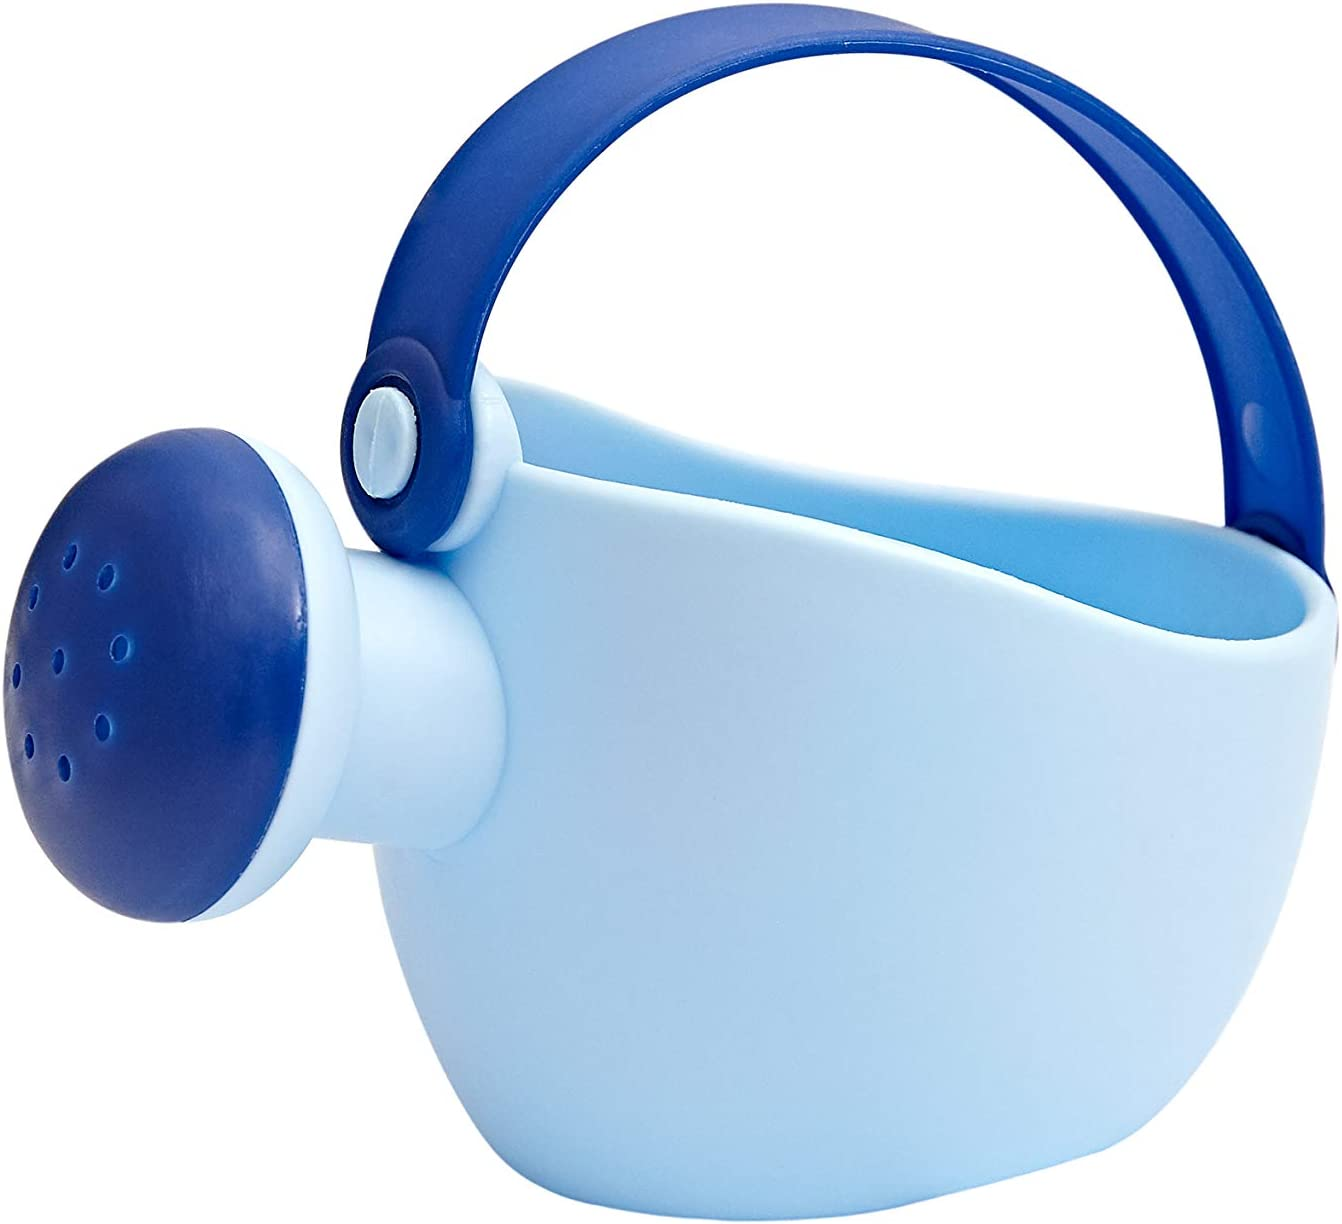 Blue or Yellow Zoggs Baby Watering Can Bath Toy 13 x 7.4 x 7.5cm